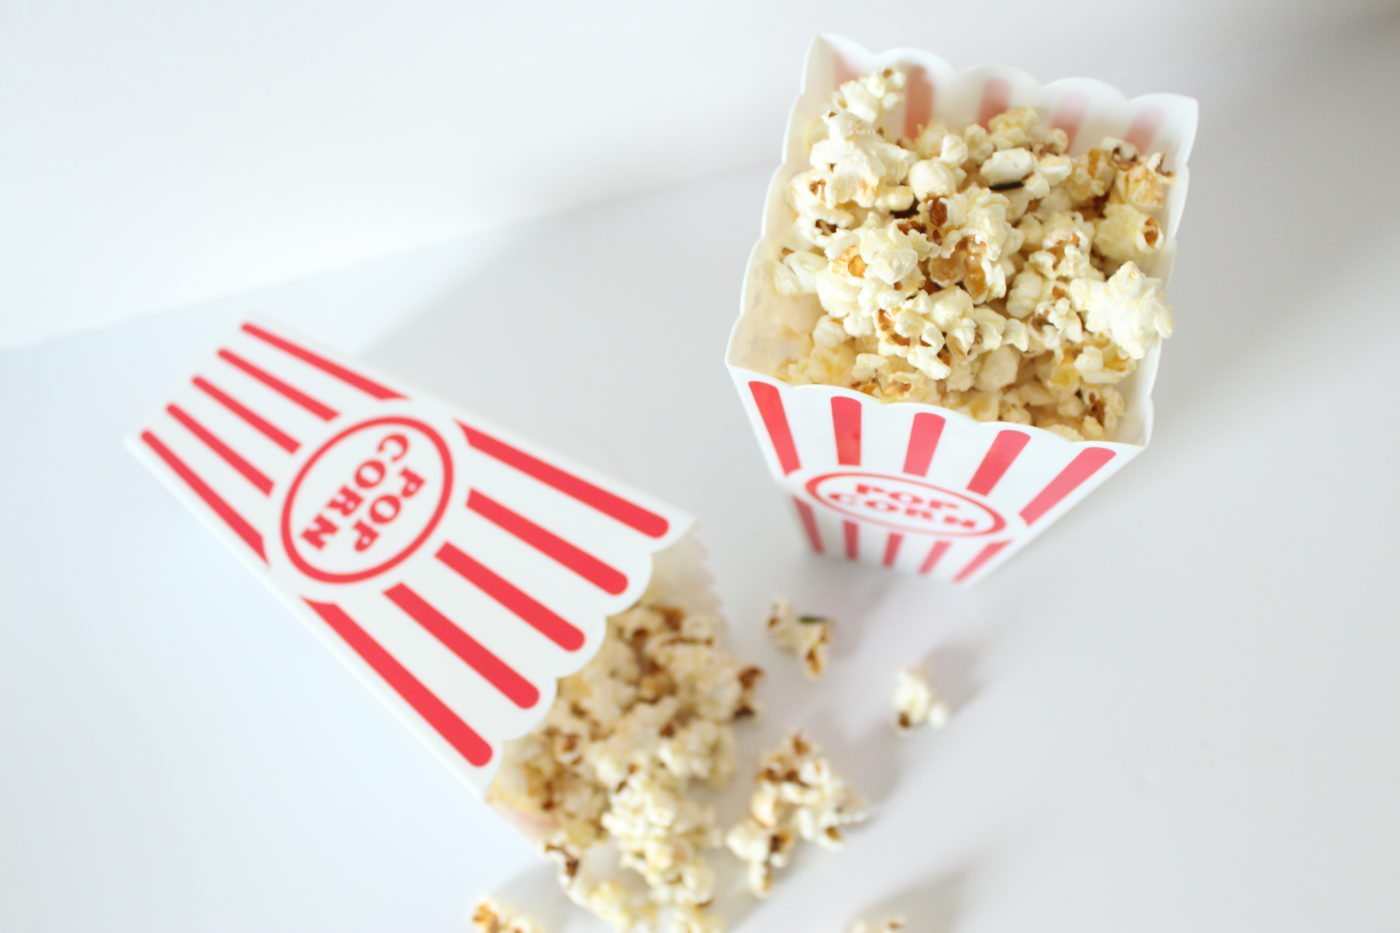 Popcorn is one of my favorite snacks to have when going to the movies. Recreate the salty snack with ease at home.